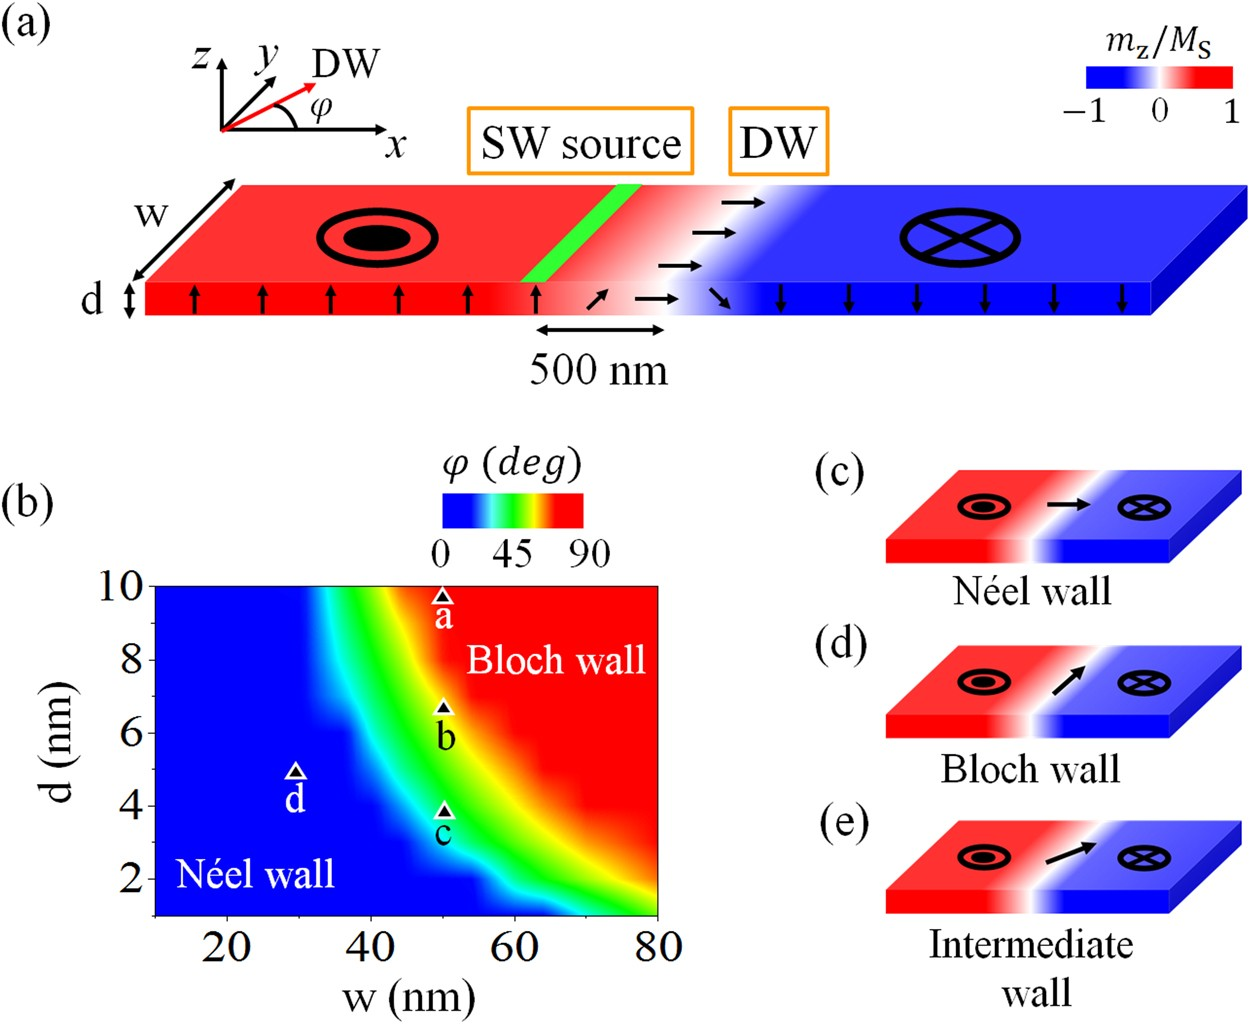 Ferromagnetic Domain Walls As Spin Wave Filters And The Interplay Classification Of Active Electronic Circuits Diagram Between Waves Scientific Reports